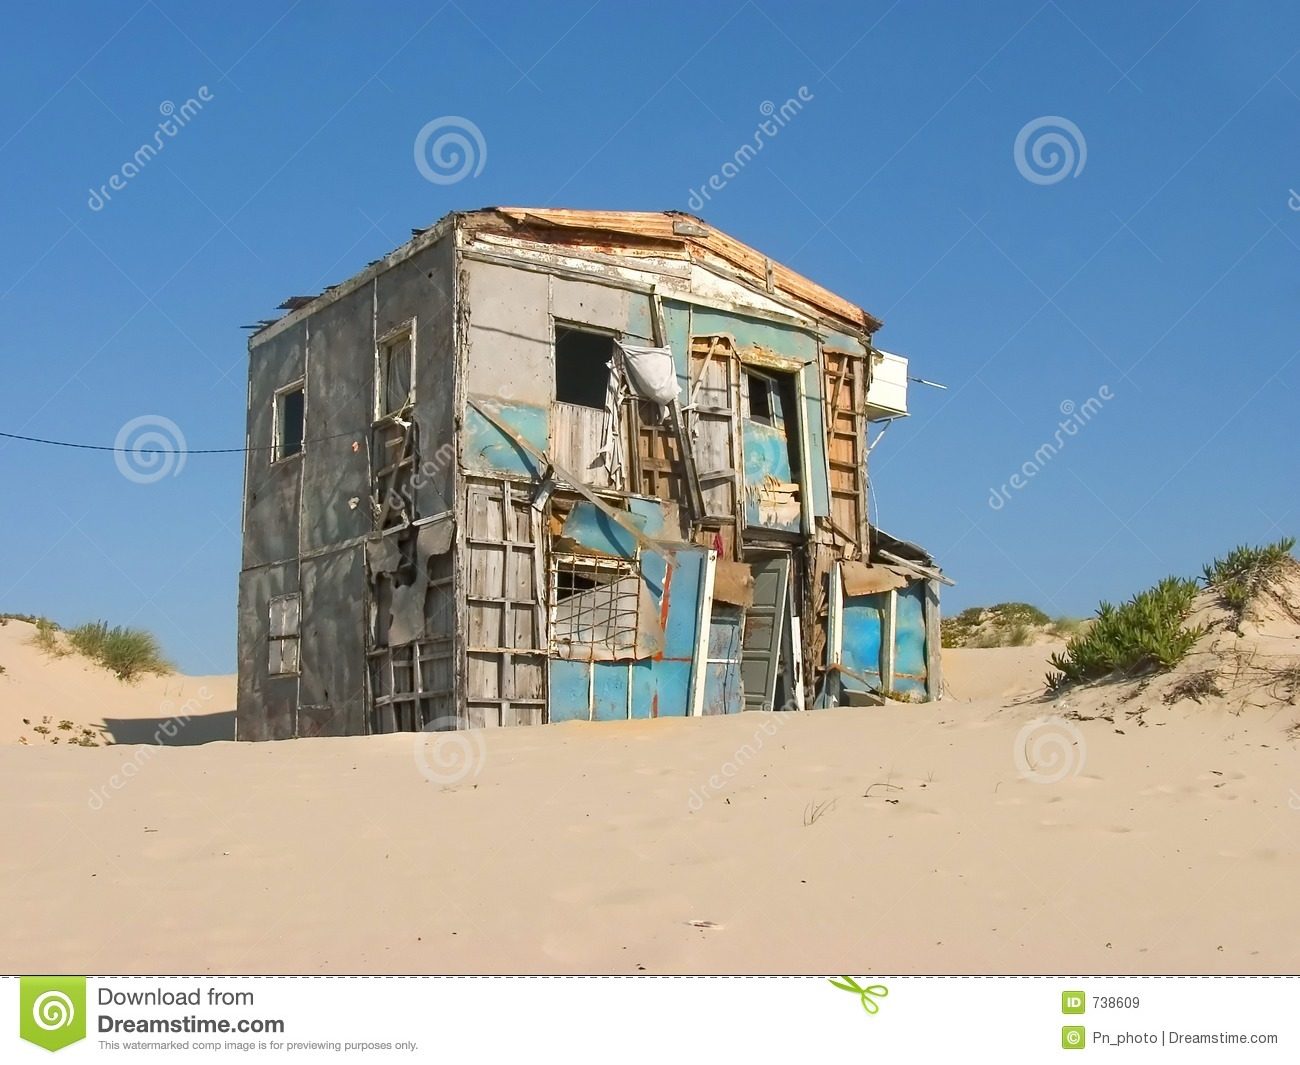 Need new house or home royalty free stock images image for I need a new home